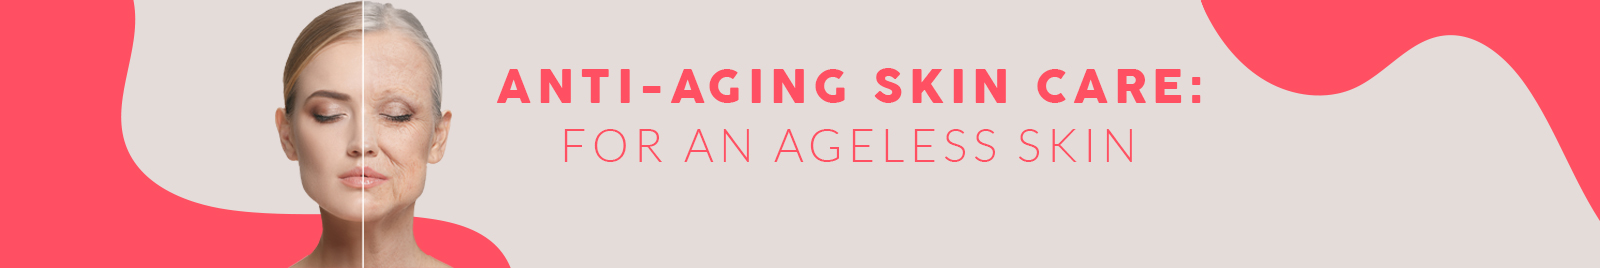 Anti-aging skin care: For an ageless skin